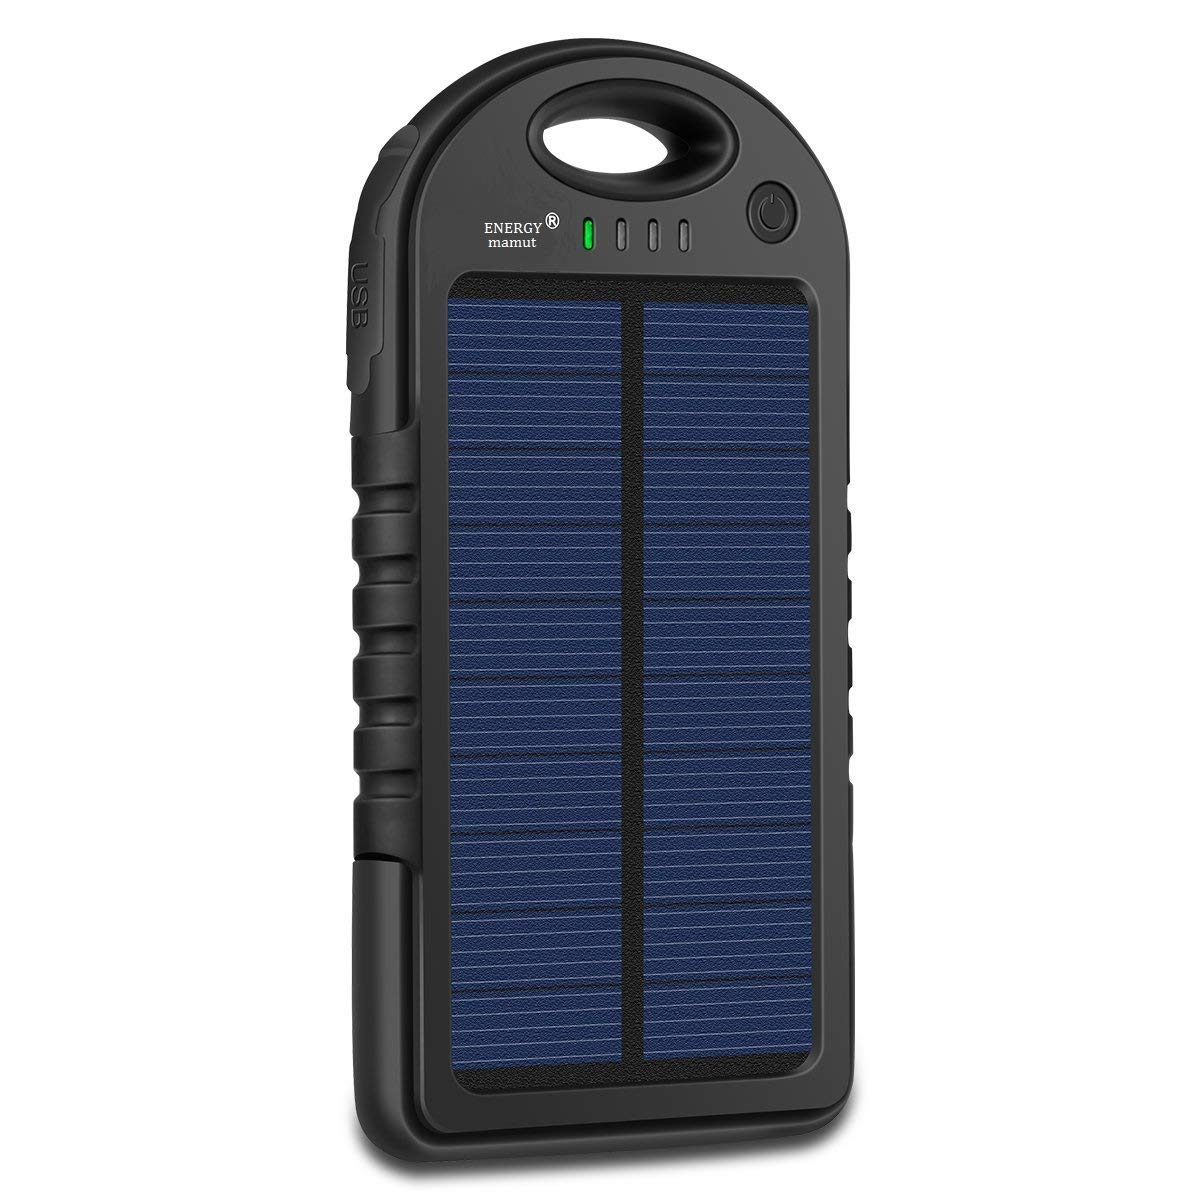 Solar Charger, Energy Mamut 5000mAh Portable Solar Power Bank Waterproof, Shockproof, Dustproof, Dual USB for Cell Phone, iPhone, Samsung, Android, Windows Phone, GoPro Camera, GPS and more. black Mr. Nahw 4335013691